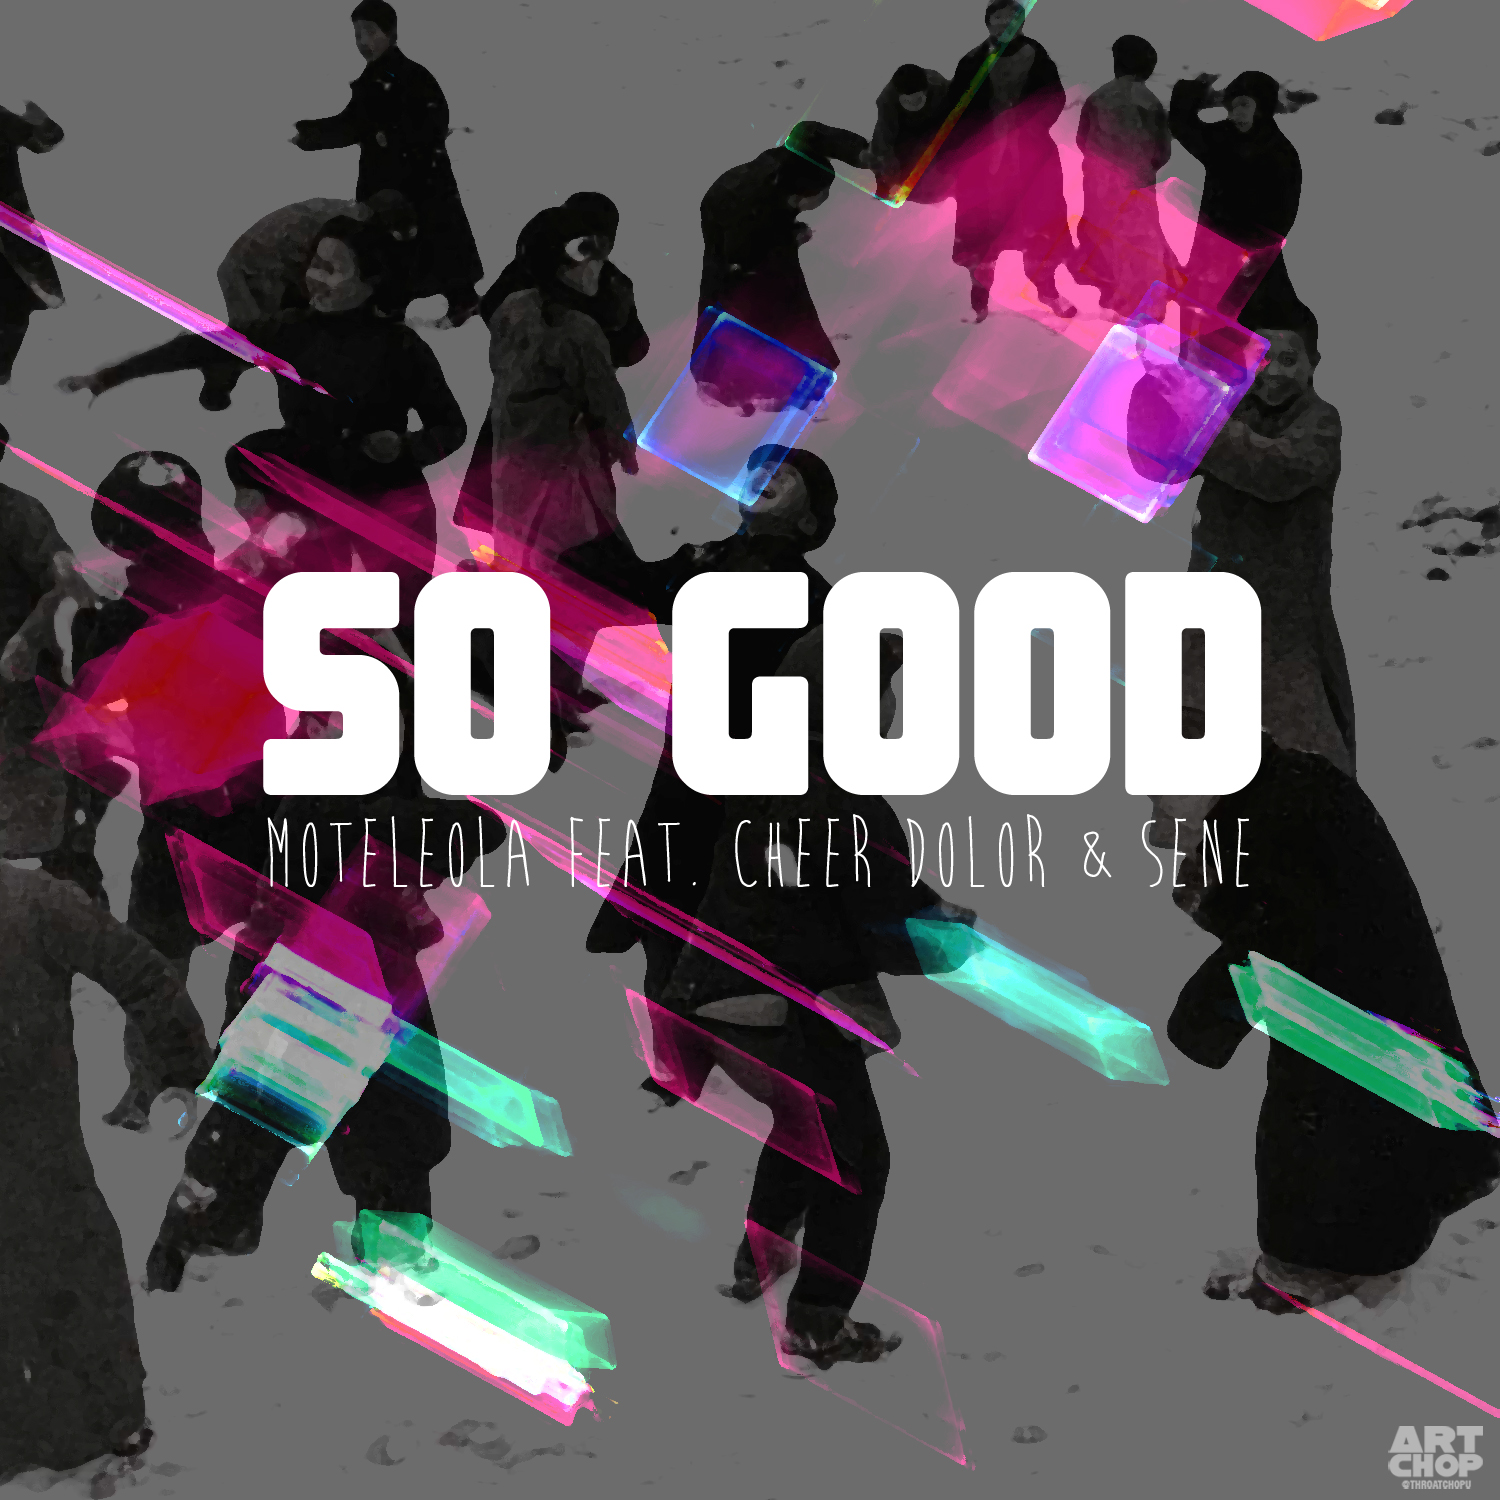 Moteleola Feat. Cheer Dolor & Sene – So Good